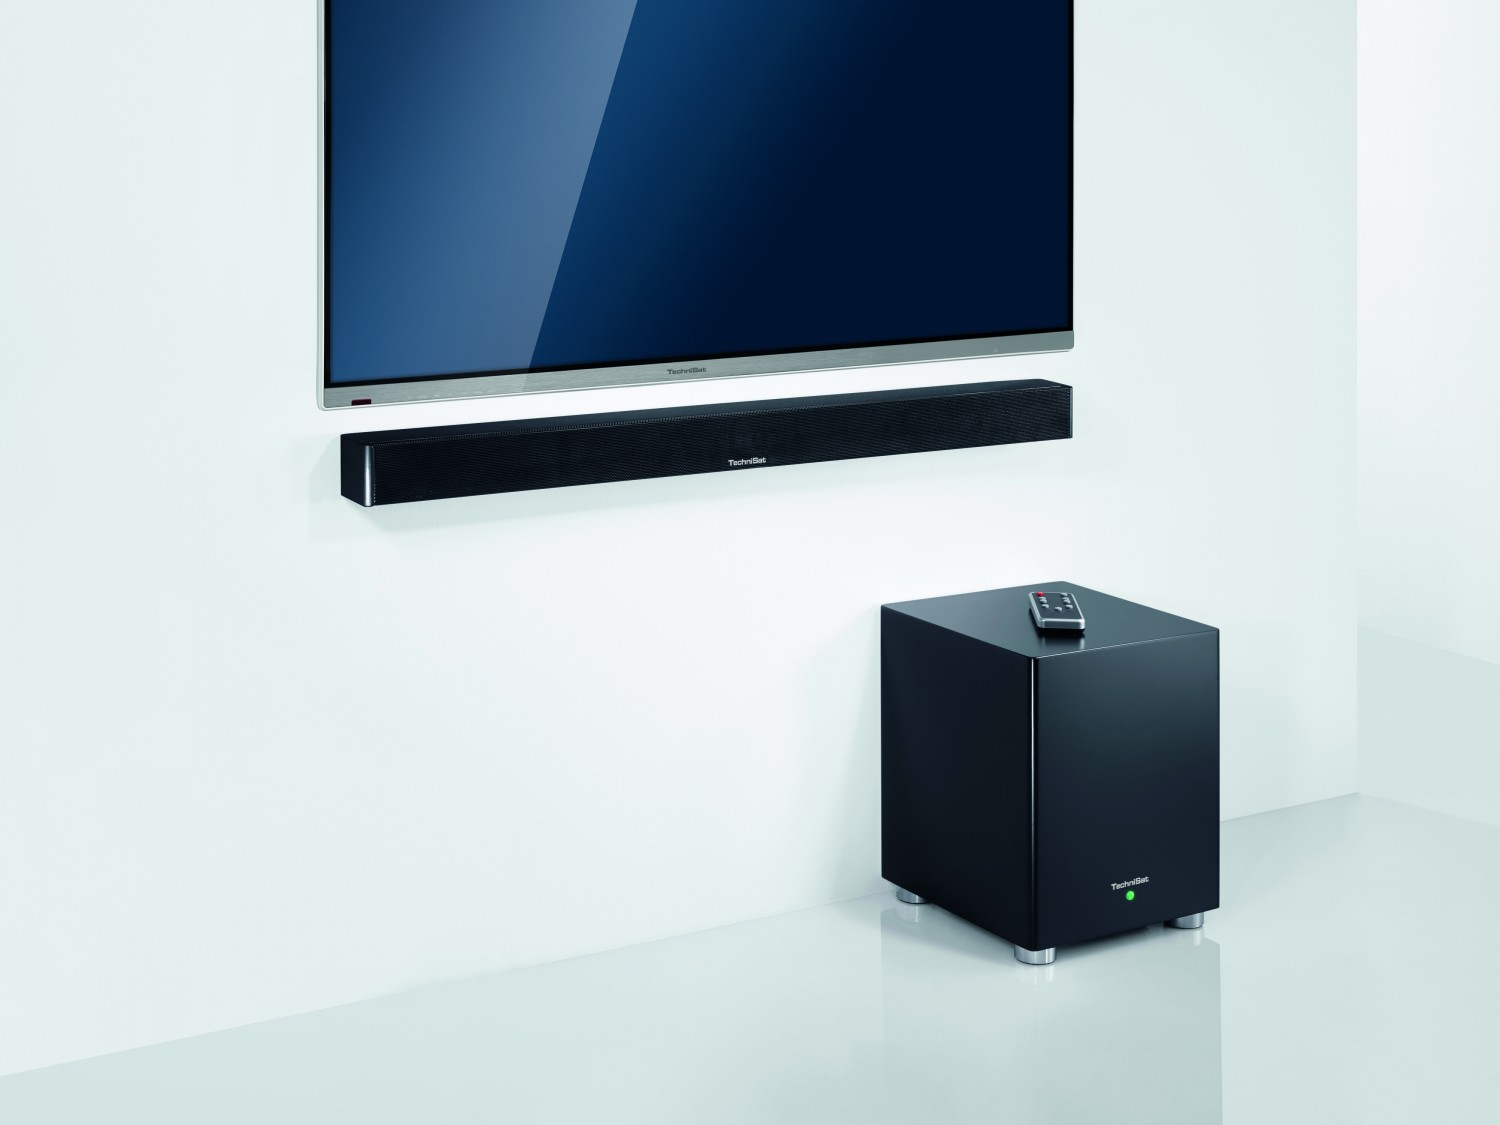 HiFi 2.1-Virtual-Surround-Soundbar von Technisat - kabelloser Subwoofer - News, Bild 1